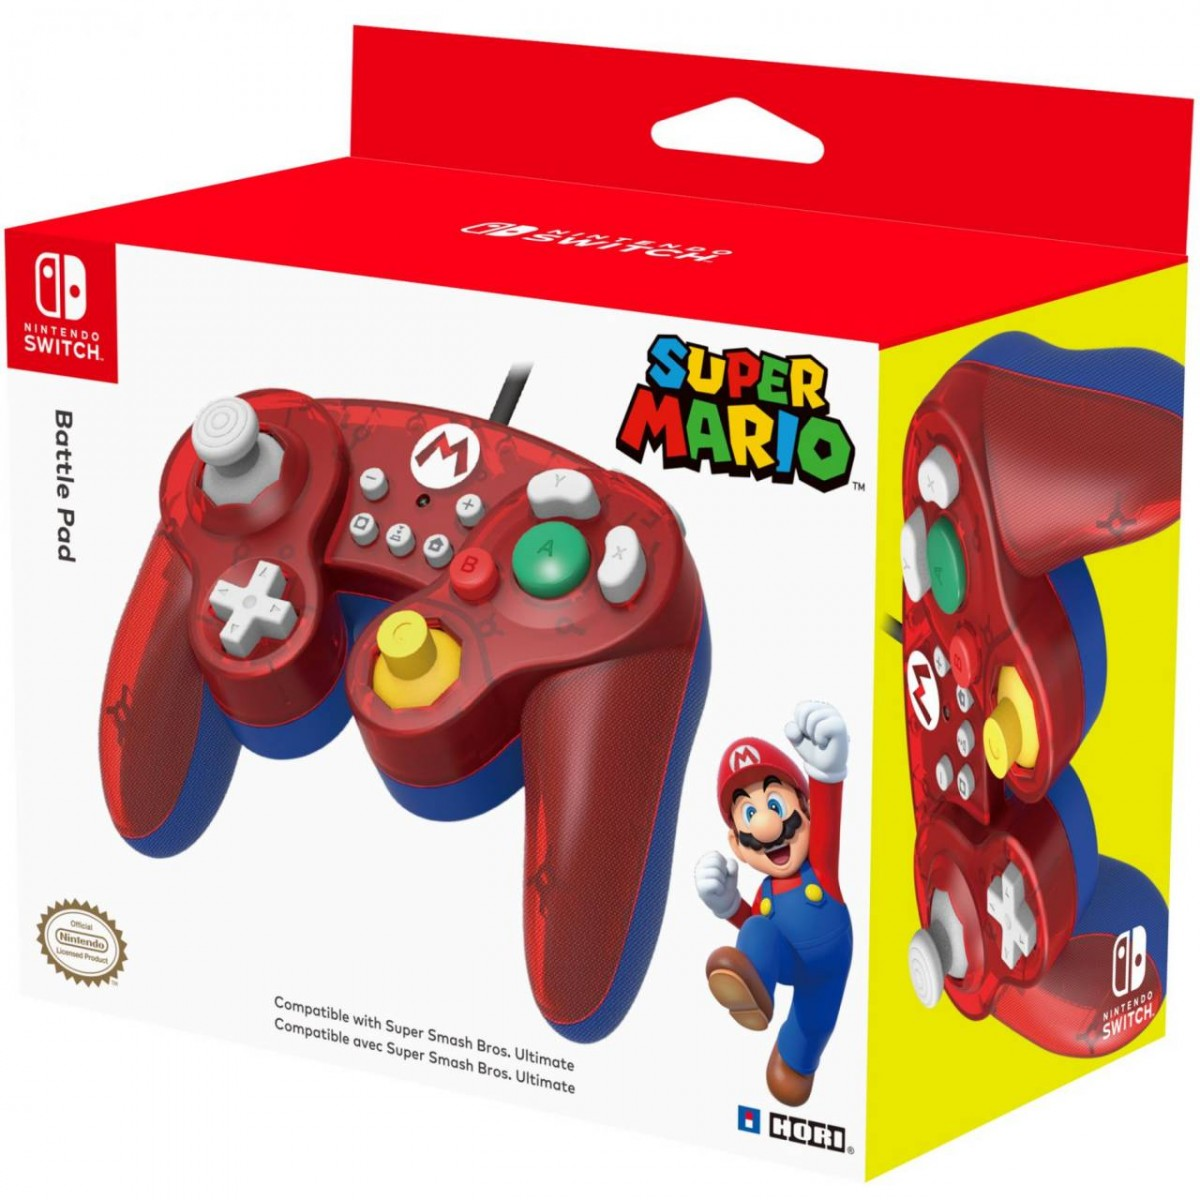 Геймпад проводной Hori Battle Pad Mario HORI (NSW-107U) (Switch)